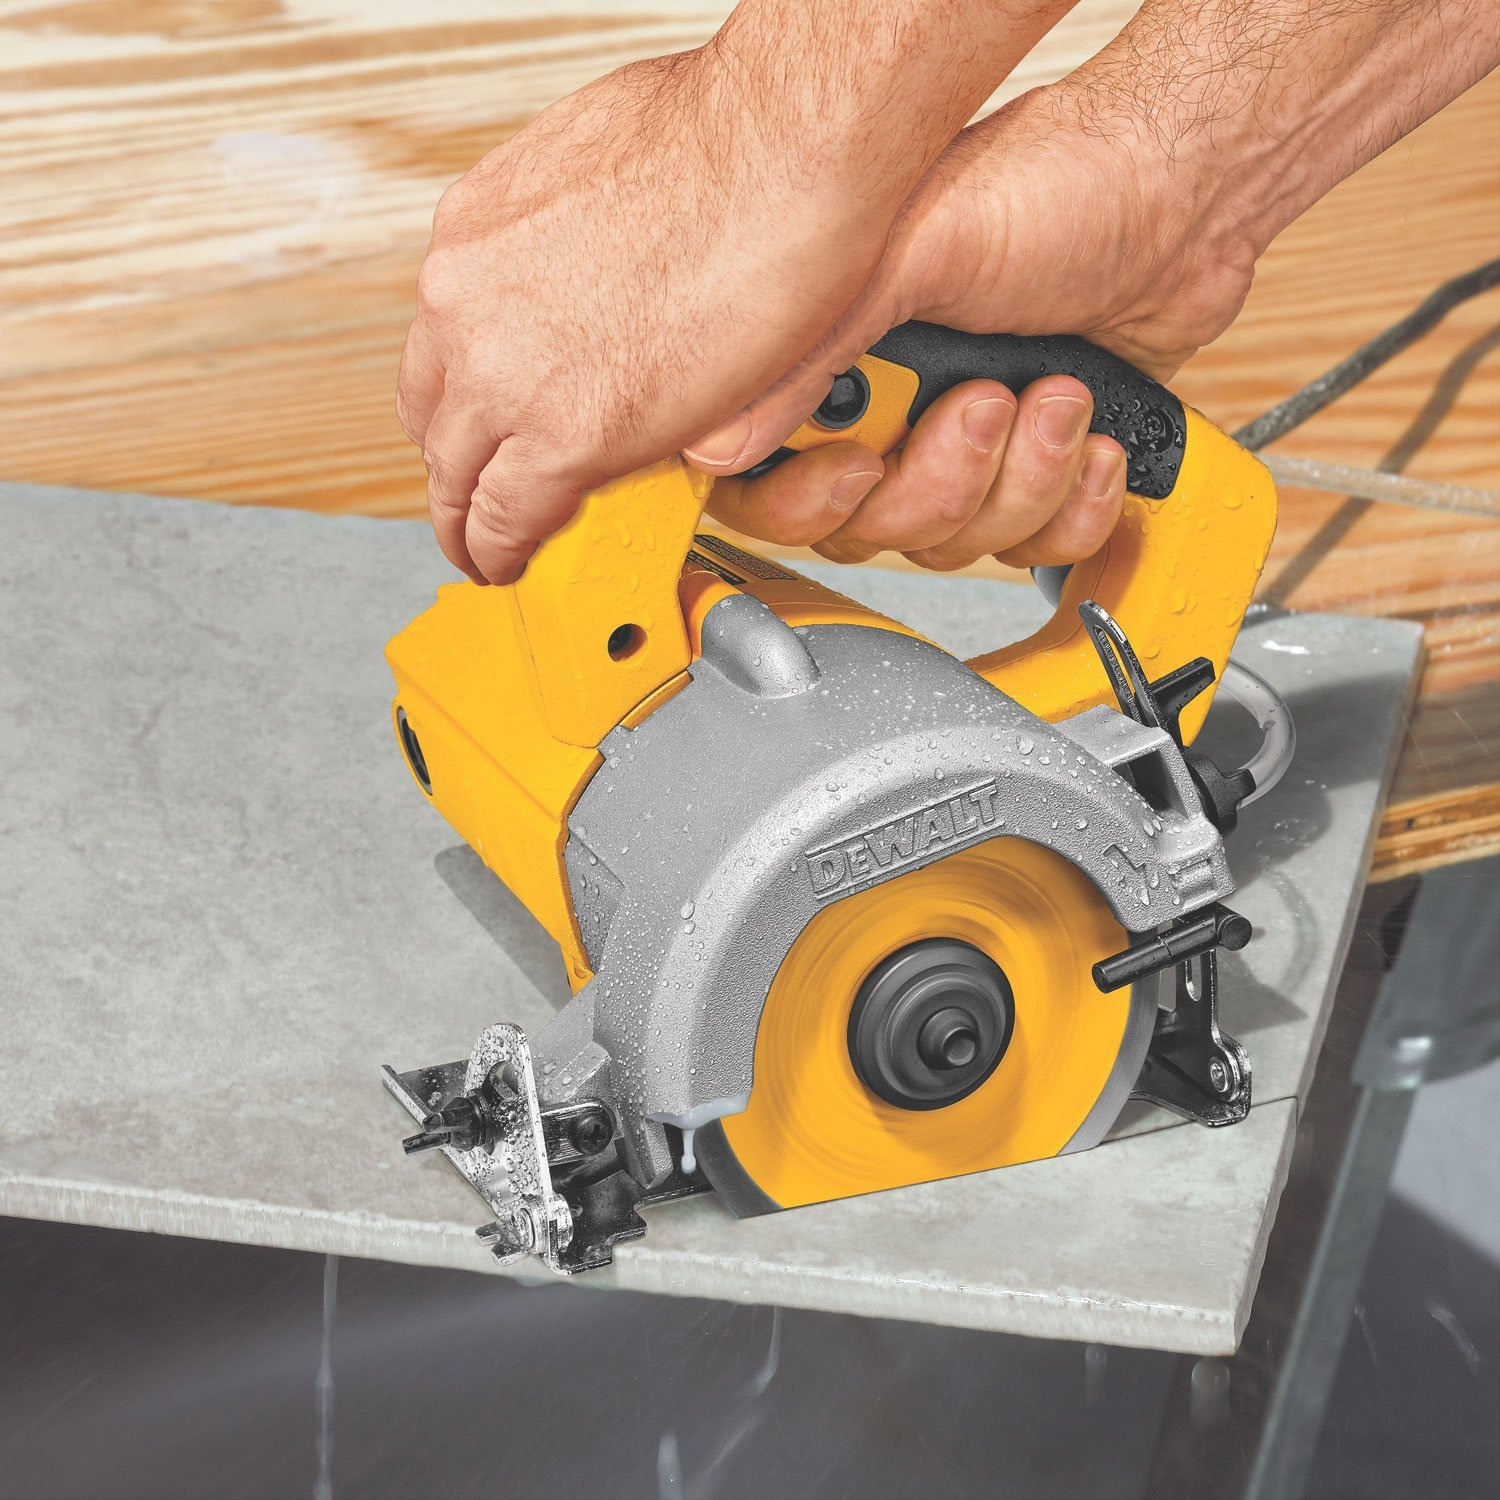 Tile saw the tile home guide that is however unless you are making a wet cut which simply means a quick hook up to a water source first tile saw dailygadgetfo Images